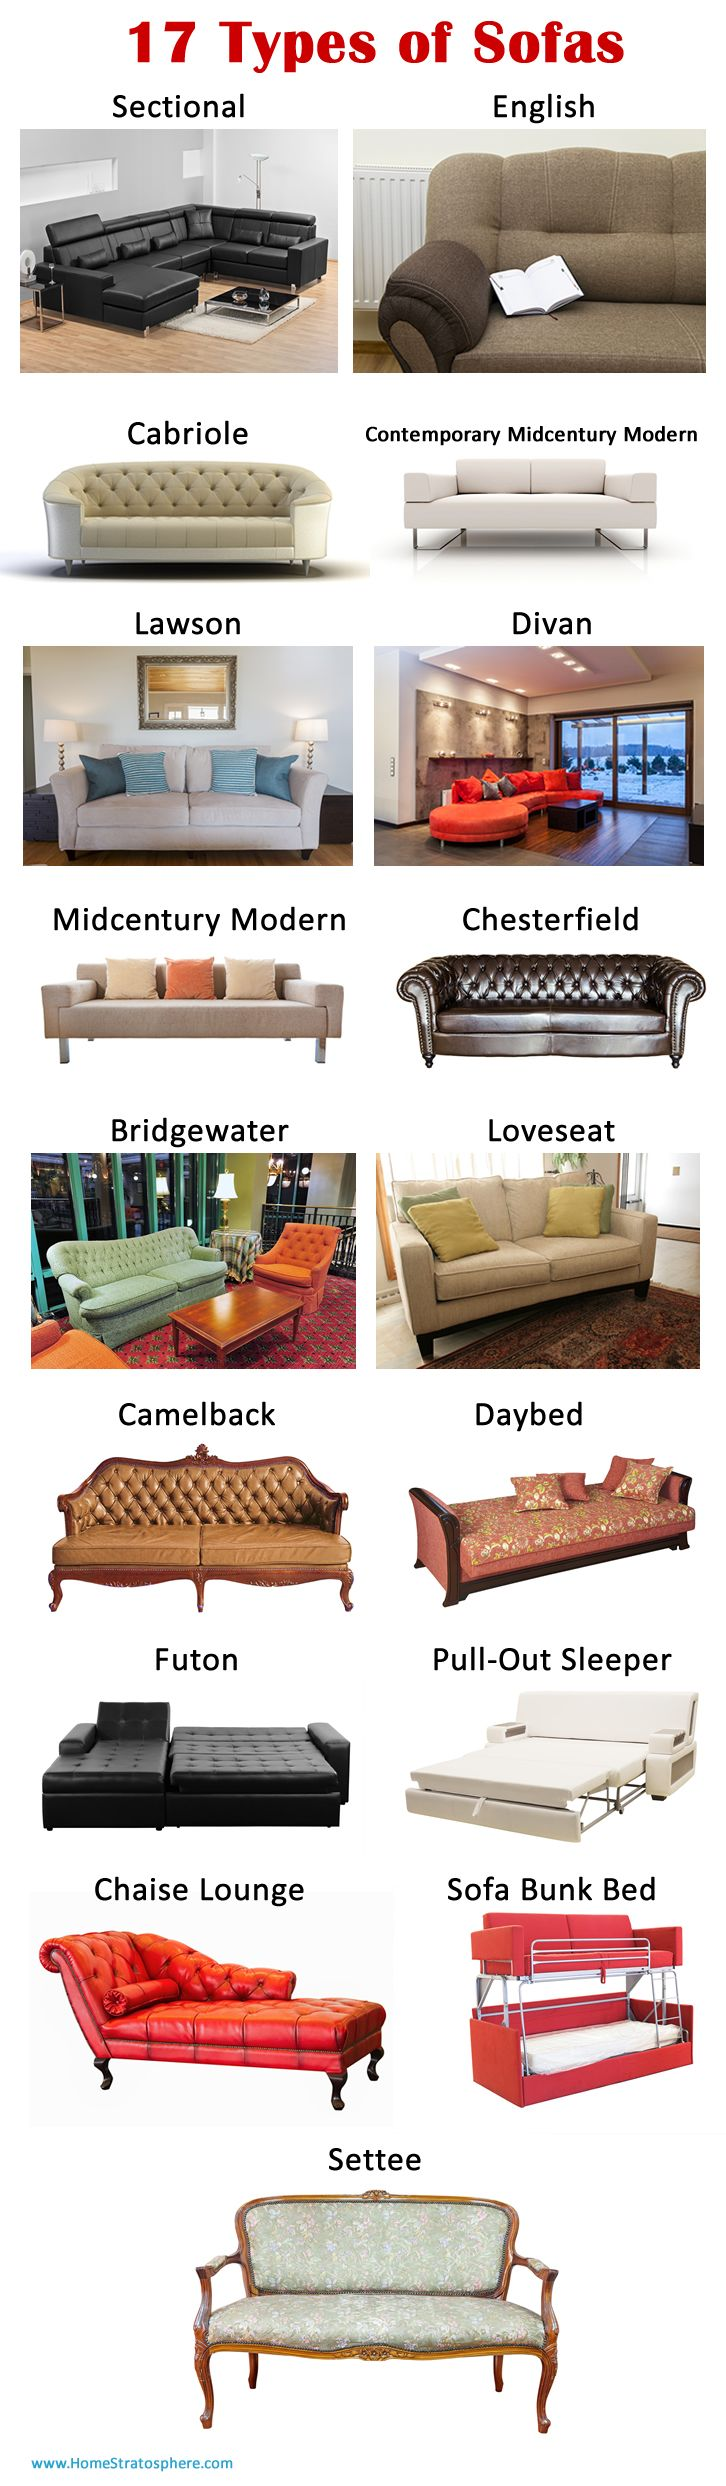 20 Types of Sofas \u0026 Couches Explained (WITH PICTURES) | Interiors ...